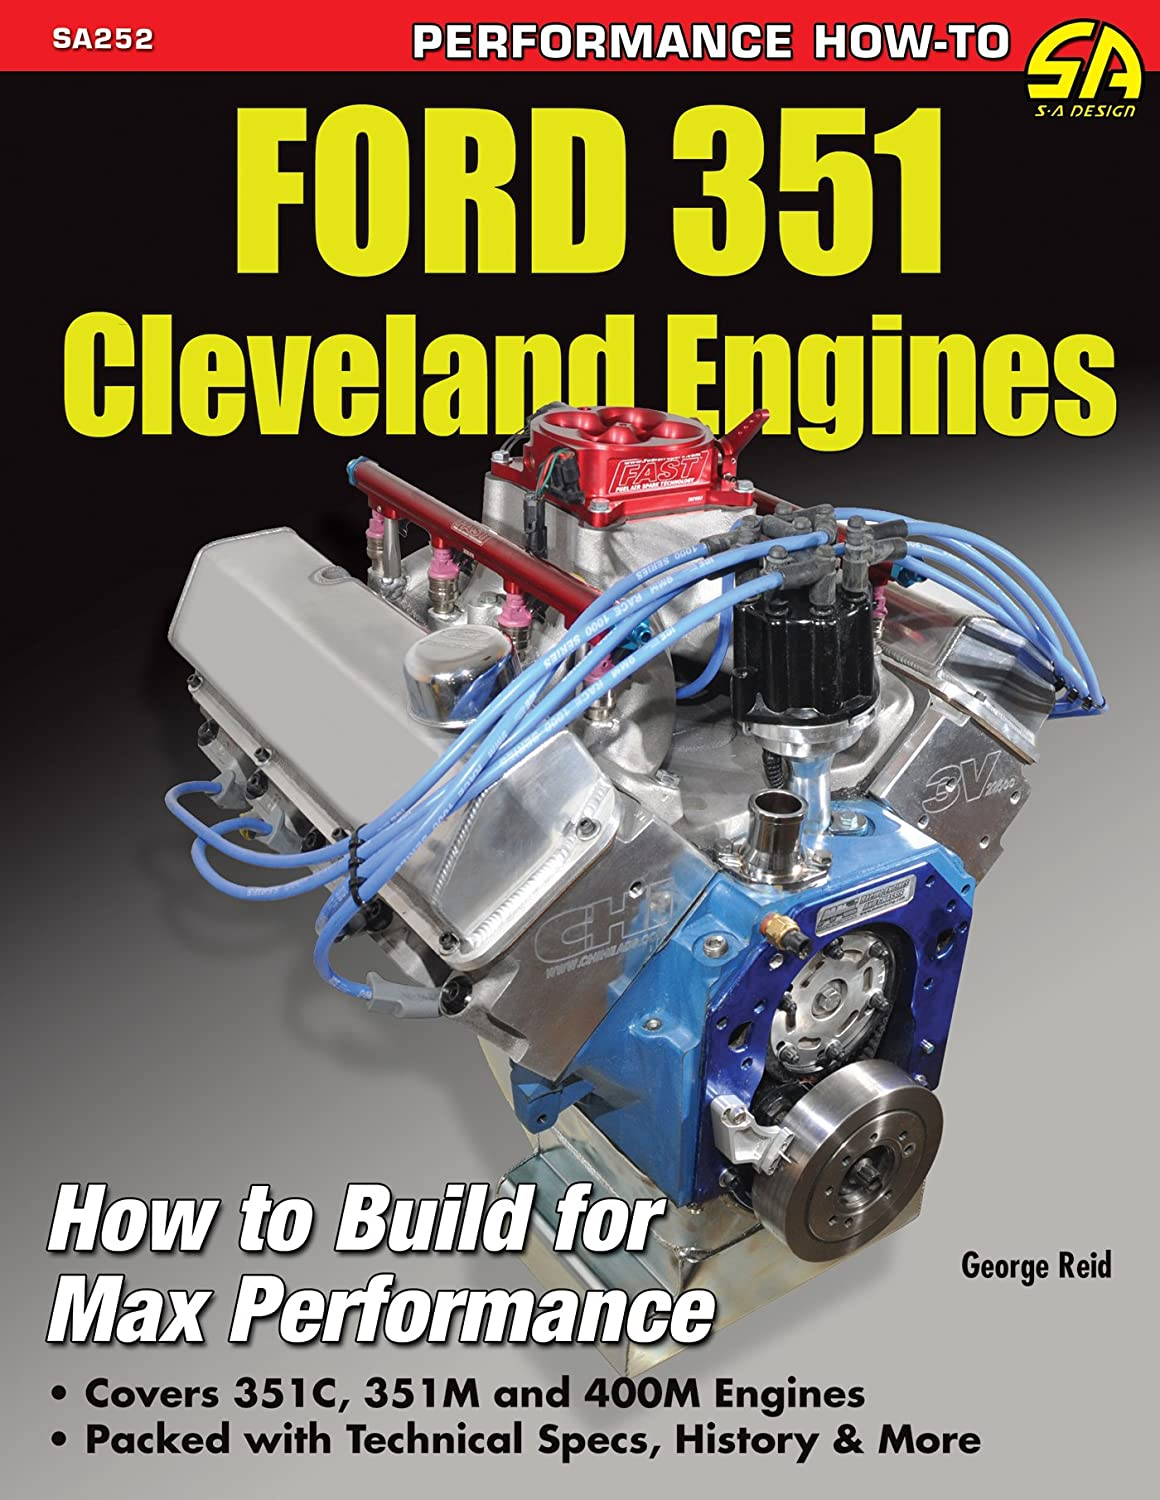 Ford 351 Cleveland Engines: How to Build for Max Performance (NONE) eBook:  George Reid: Amazon com au: Kindle Store